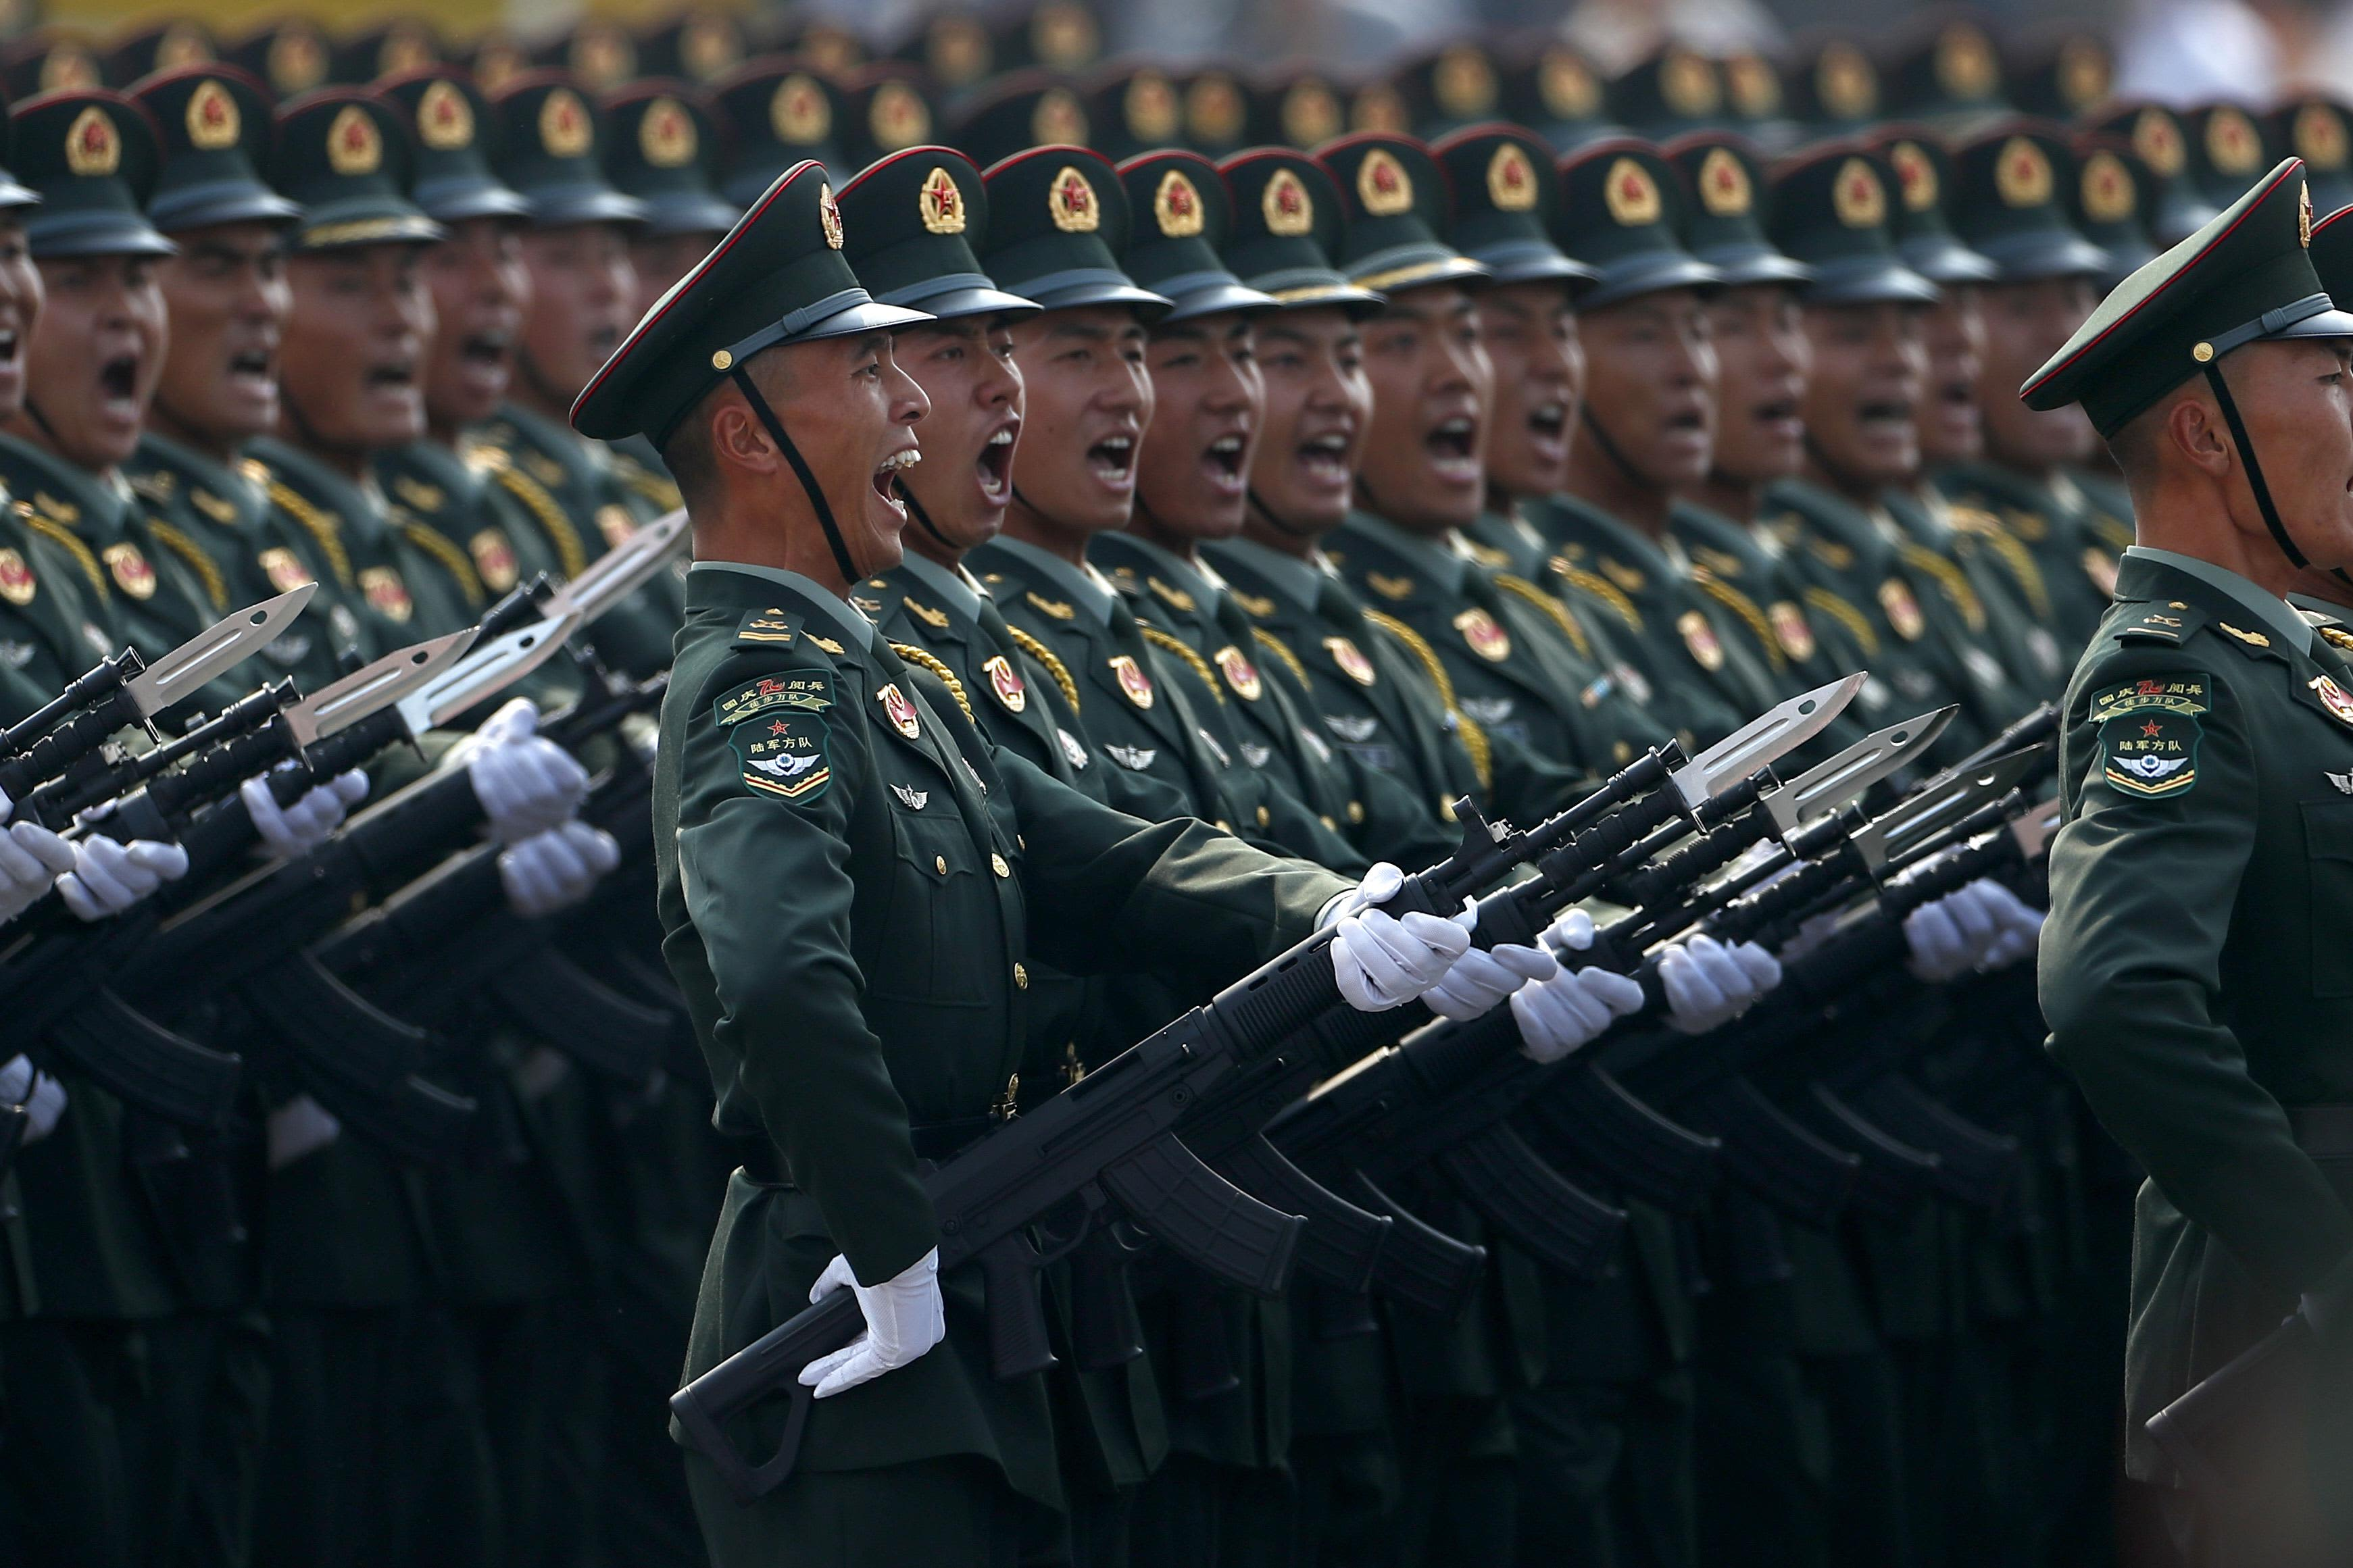 China is 'coming closer' but we don't want a new adversary, NATO chief says